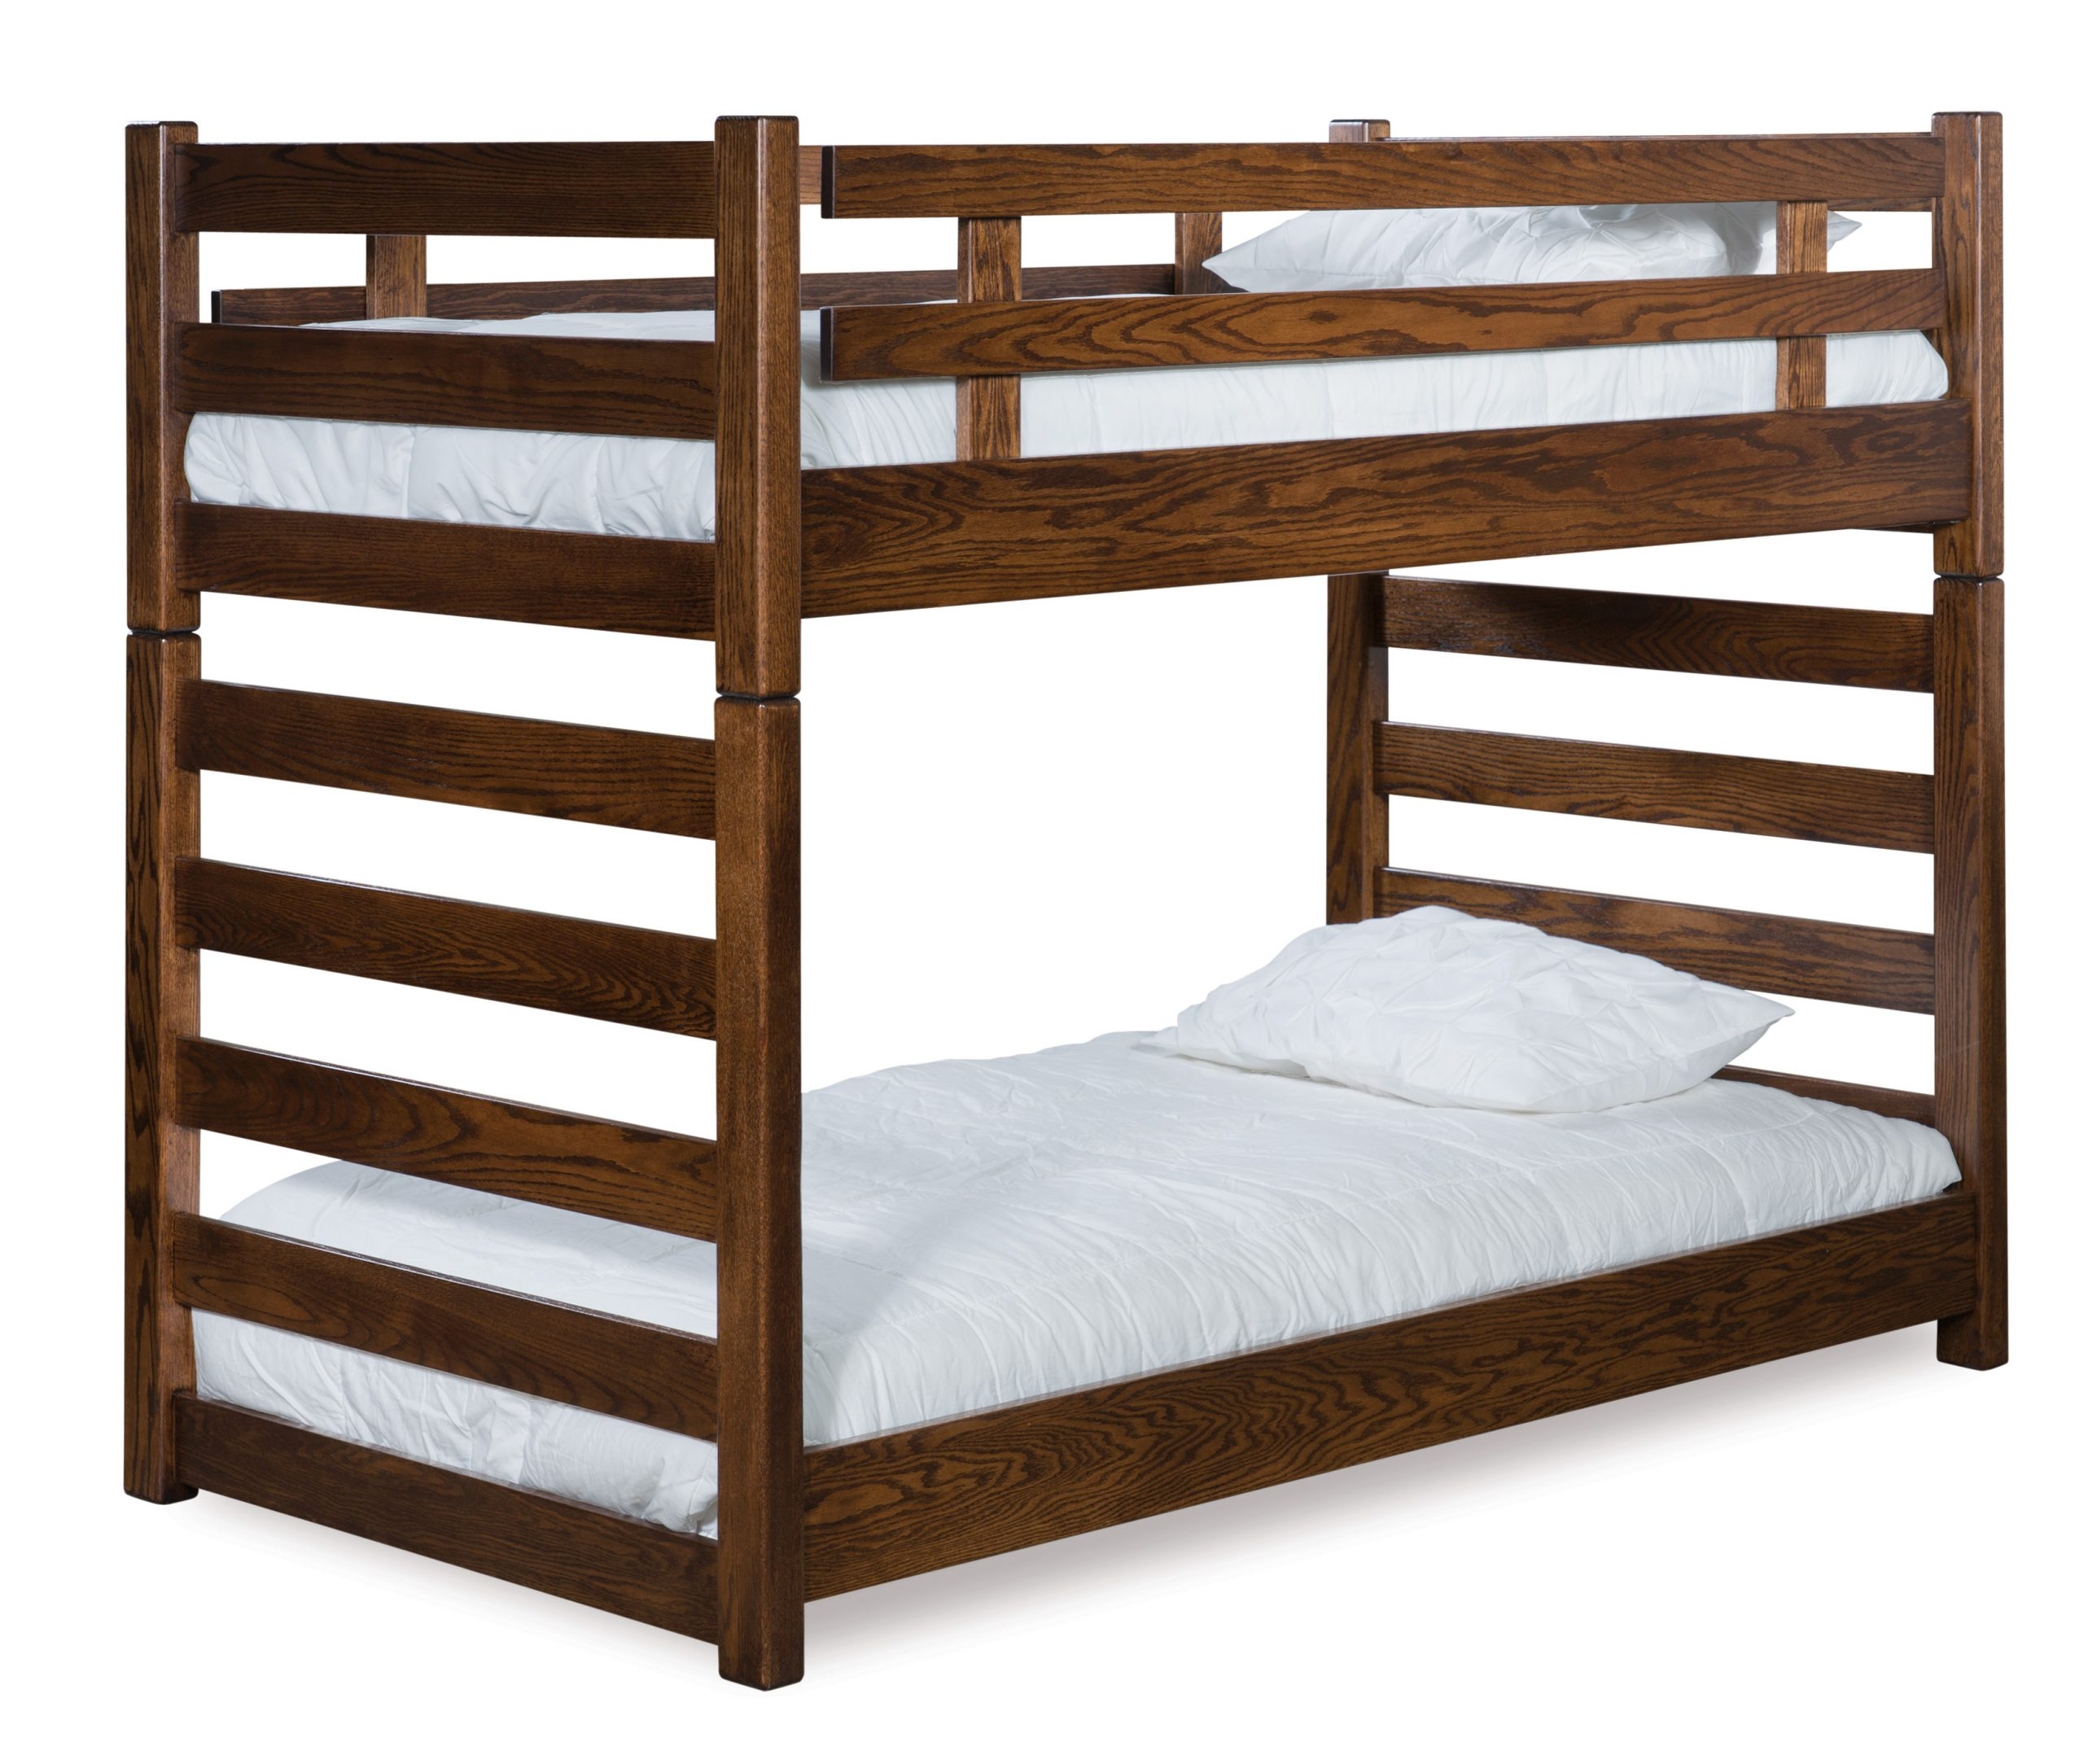 Picture of: Ladder Bunk Bed Amish Solid Wood Beds Kvadro Furniture